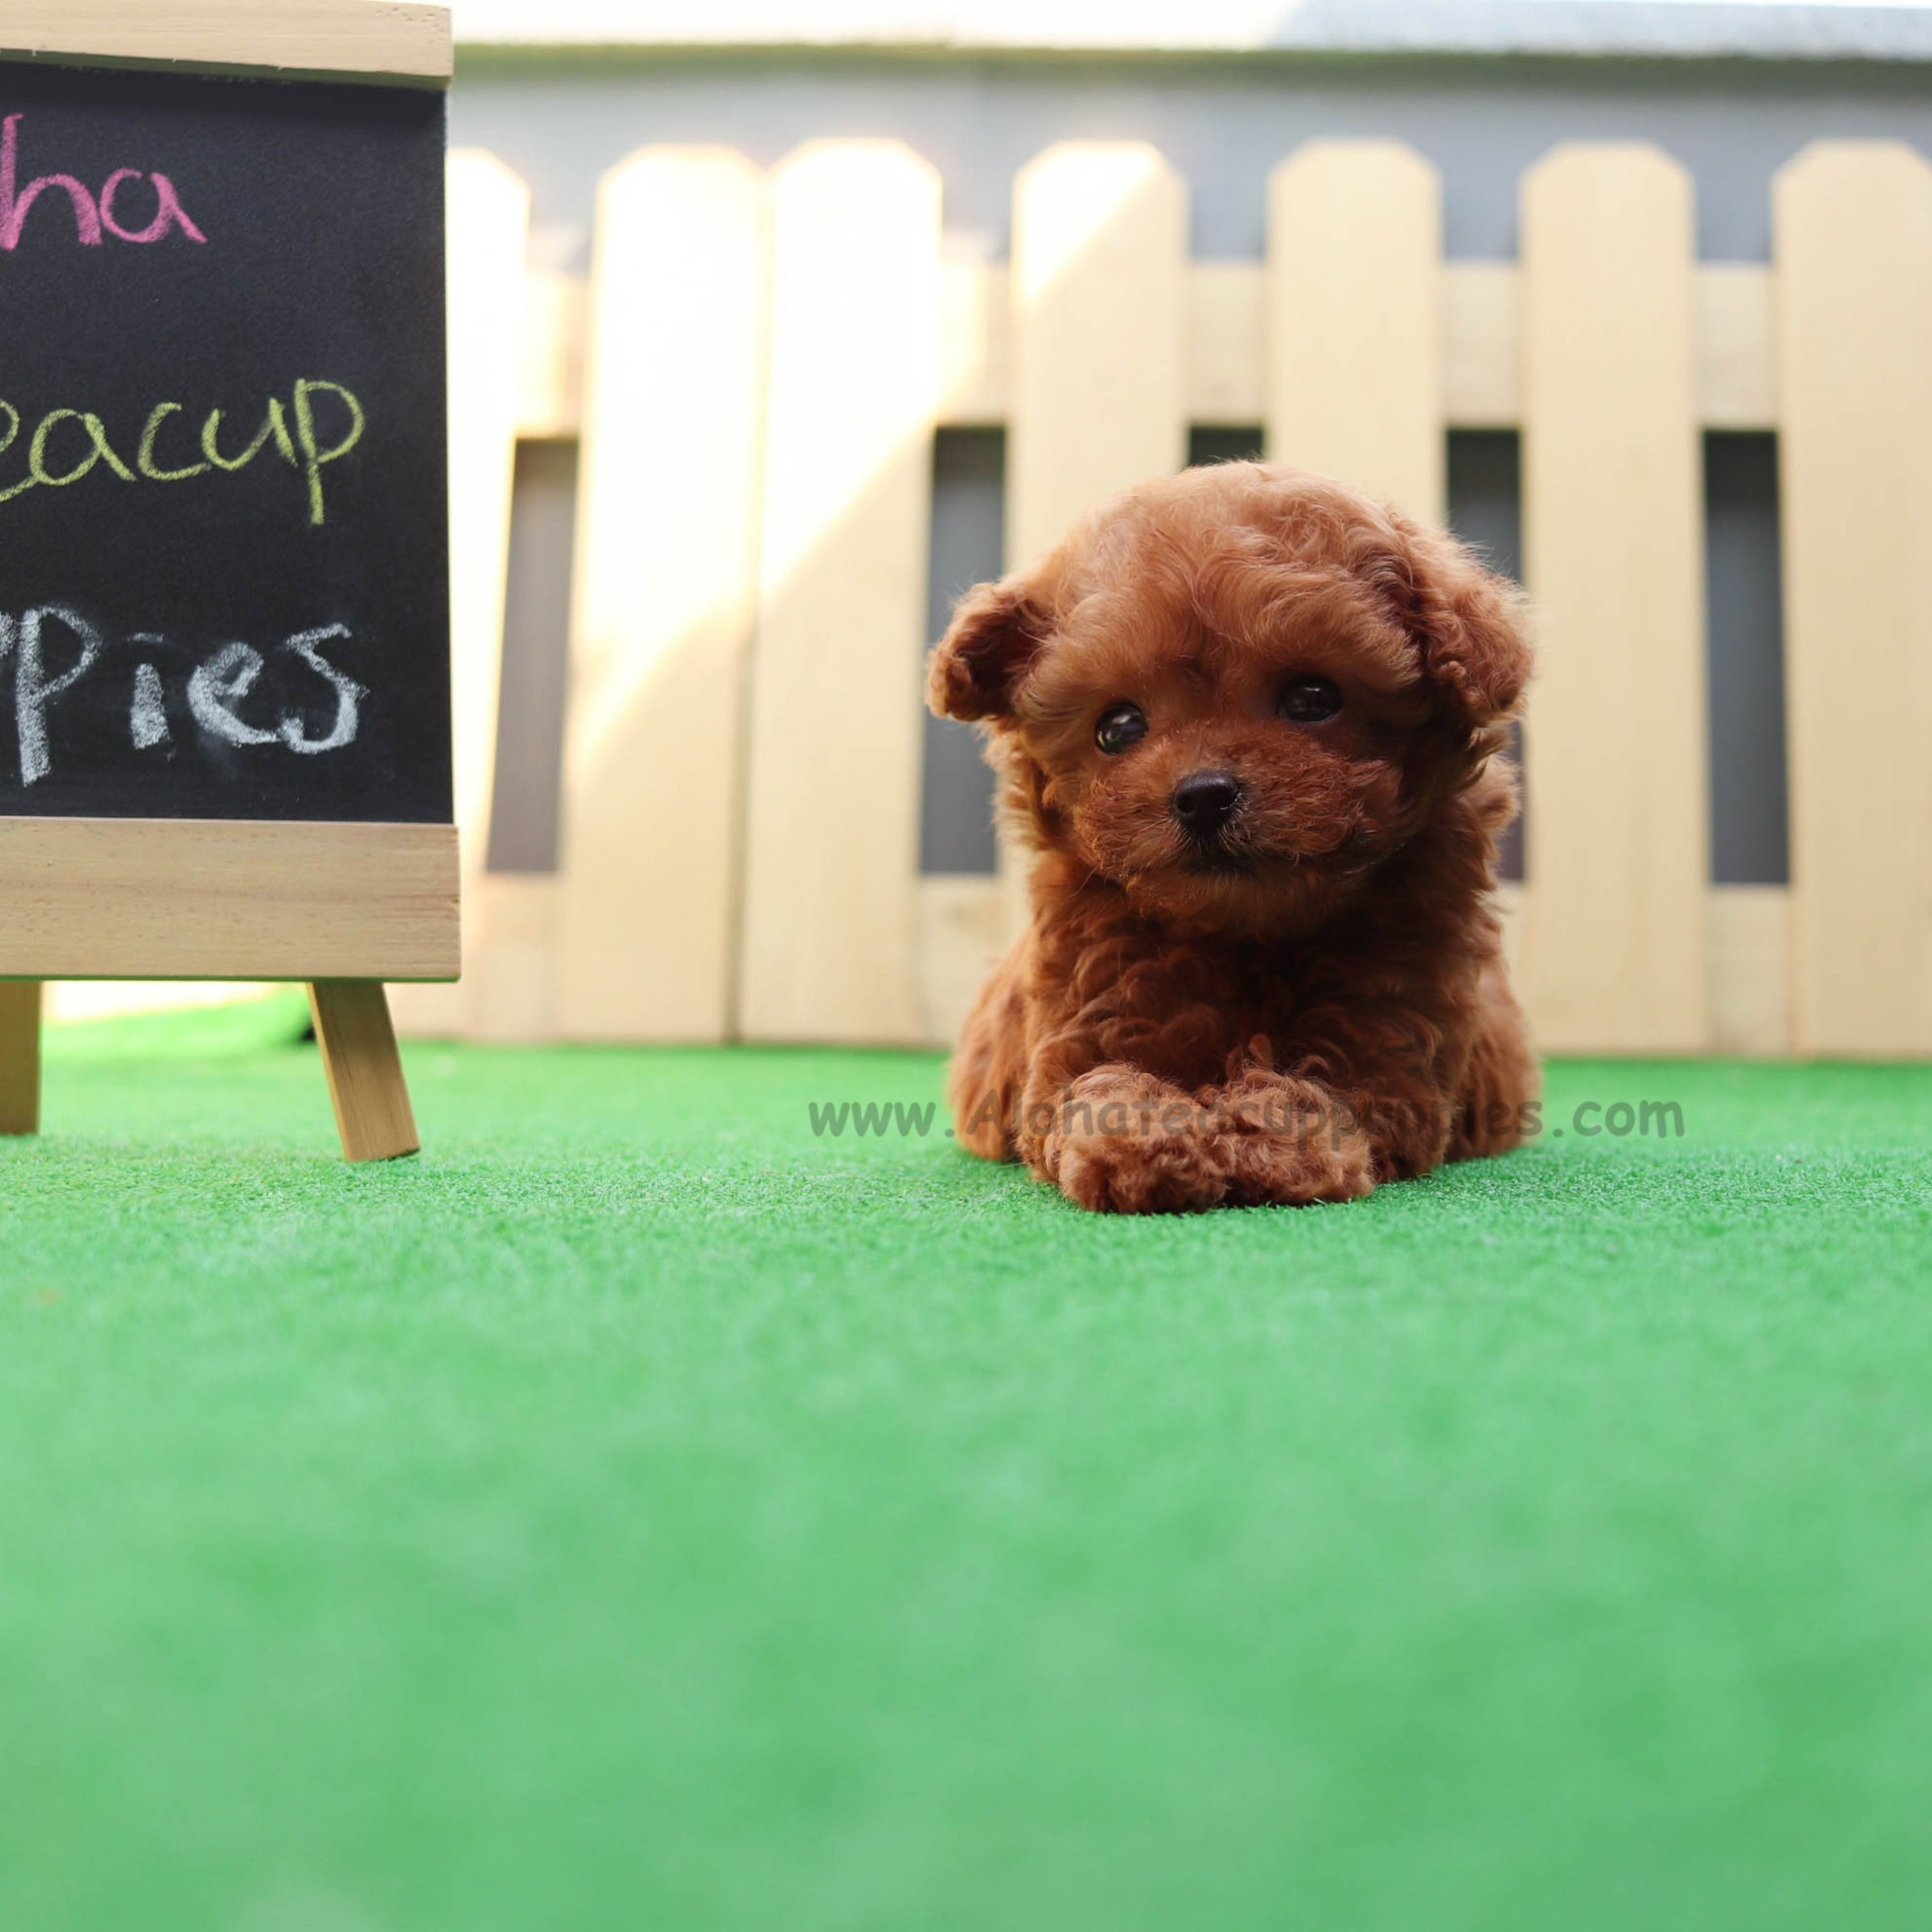 Micro Teacup Poodle Full And Curly Red Fur No One Will